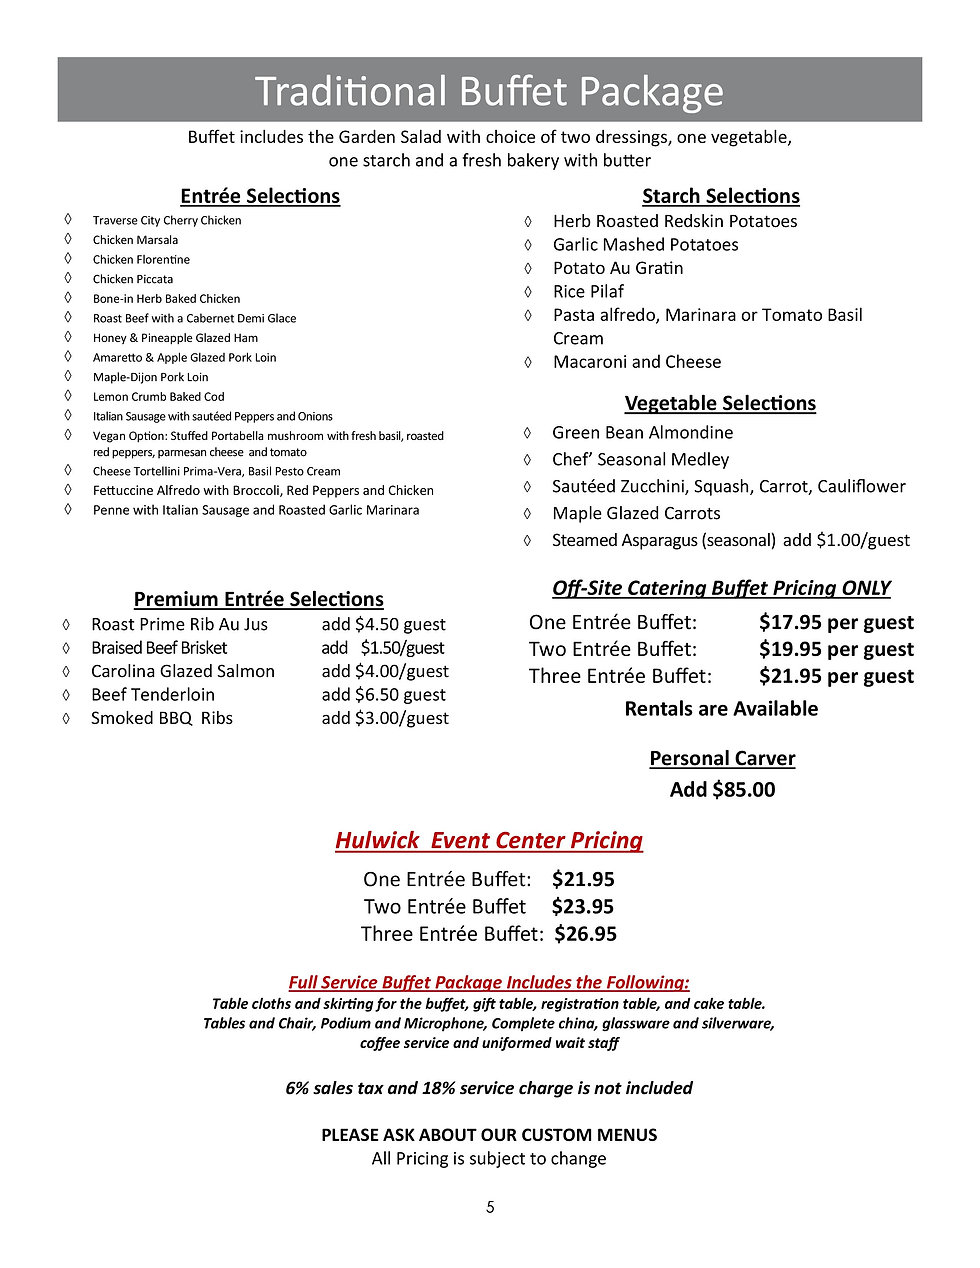 Trout town catering NEW-page-005.jpg